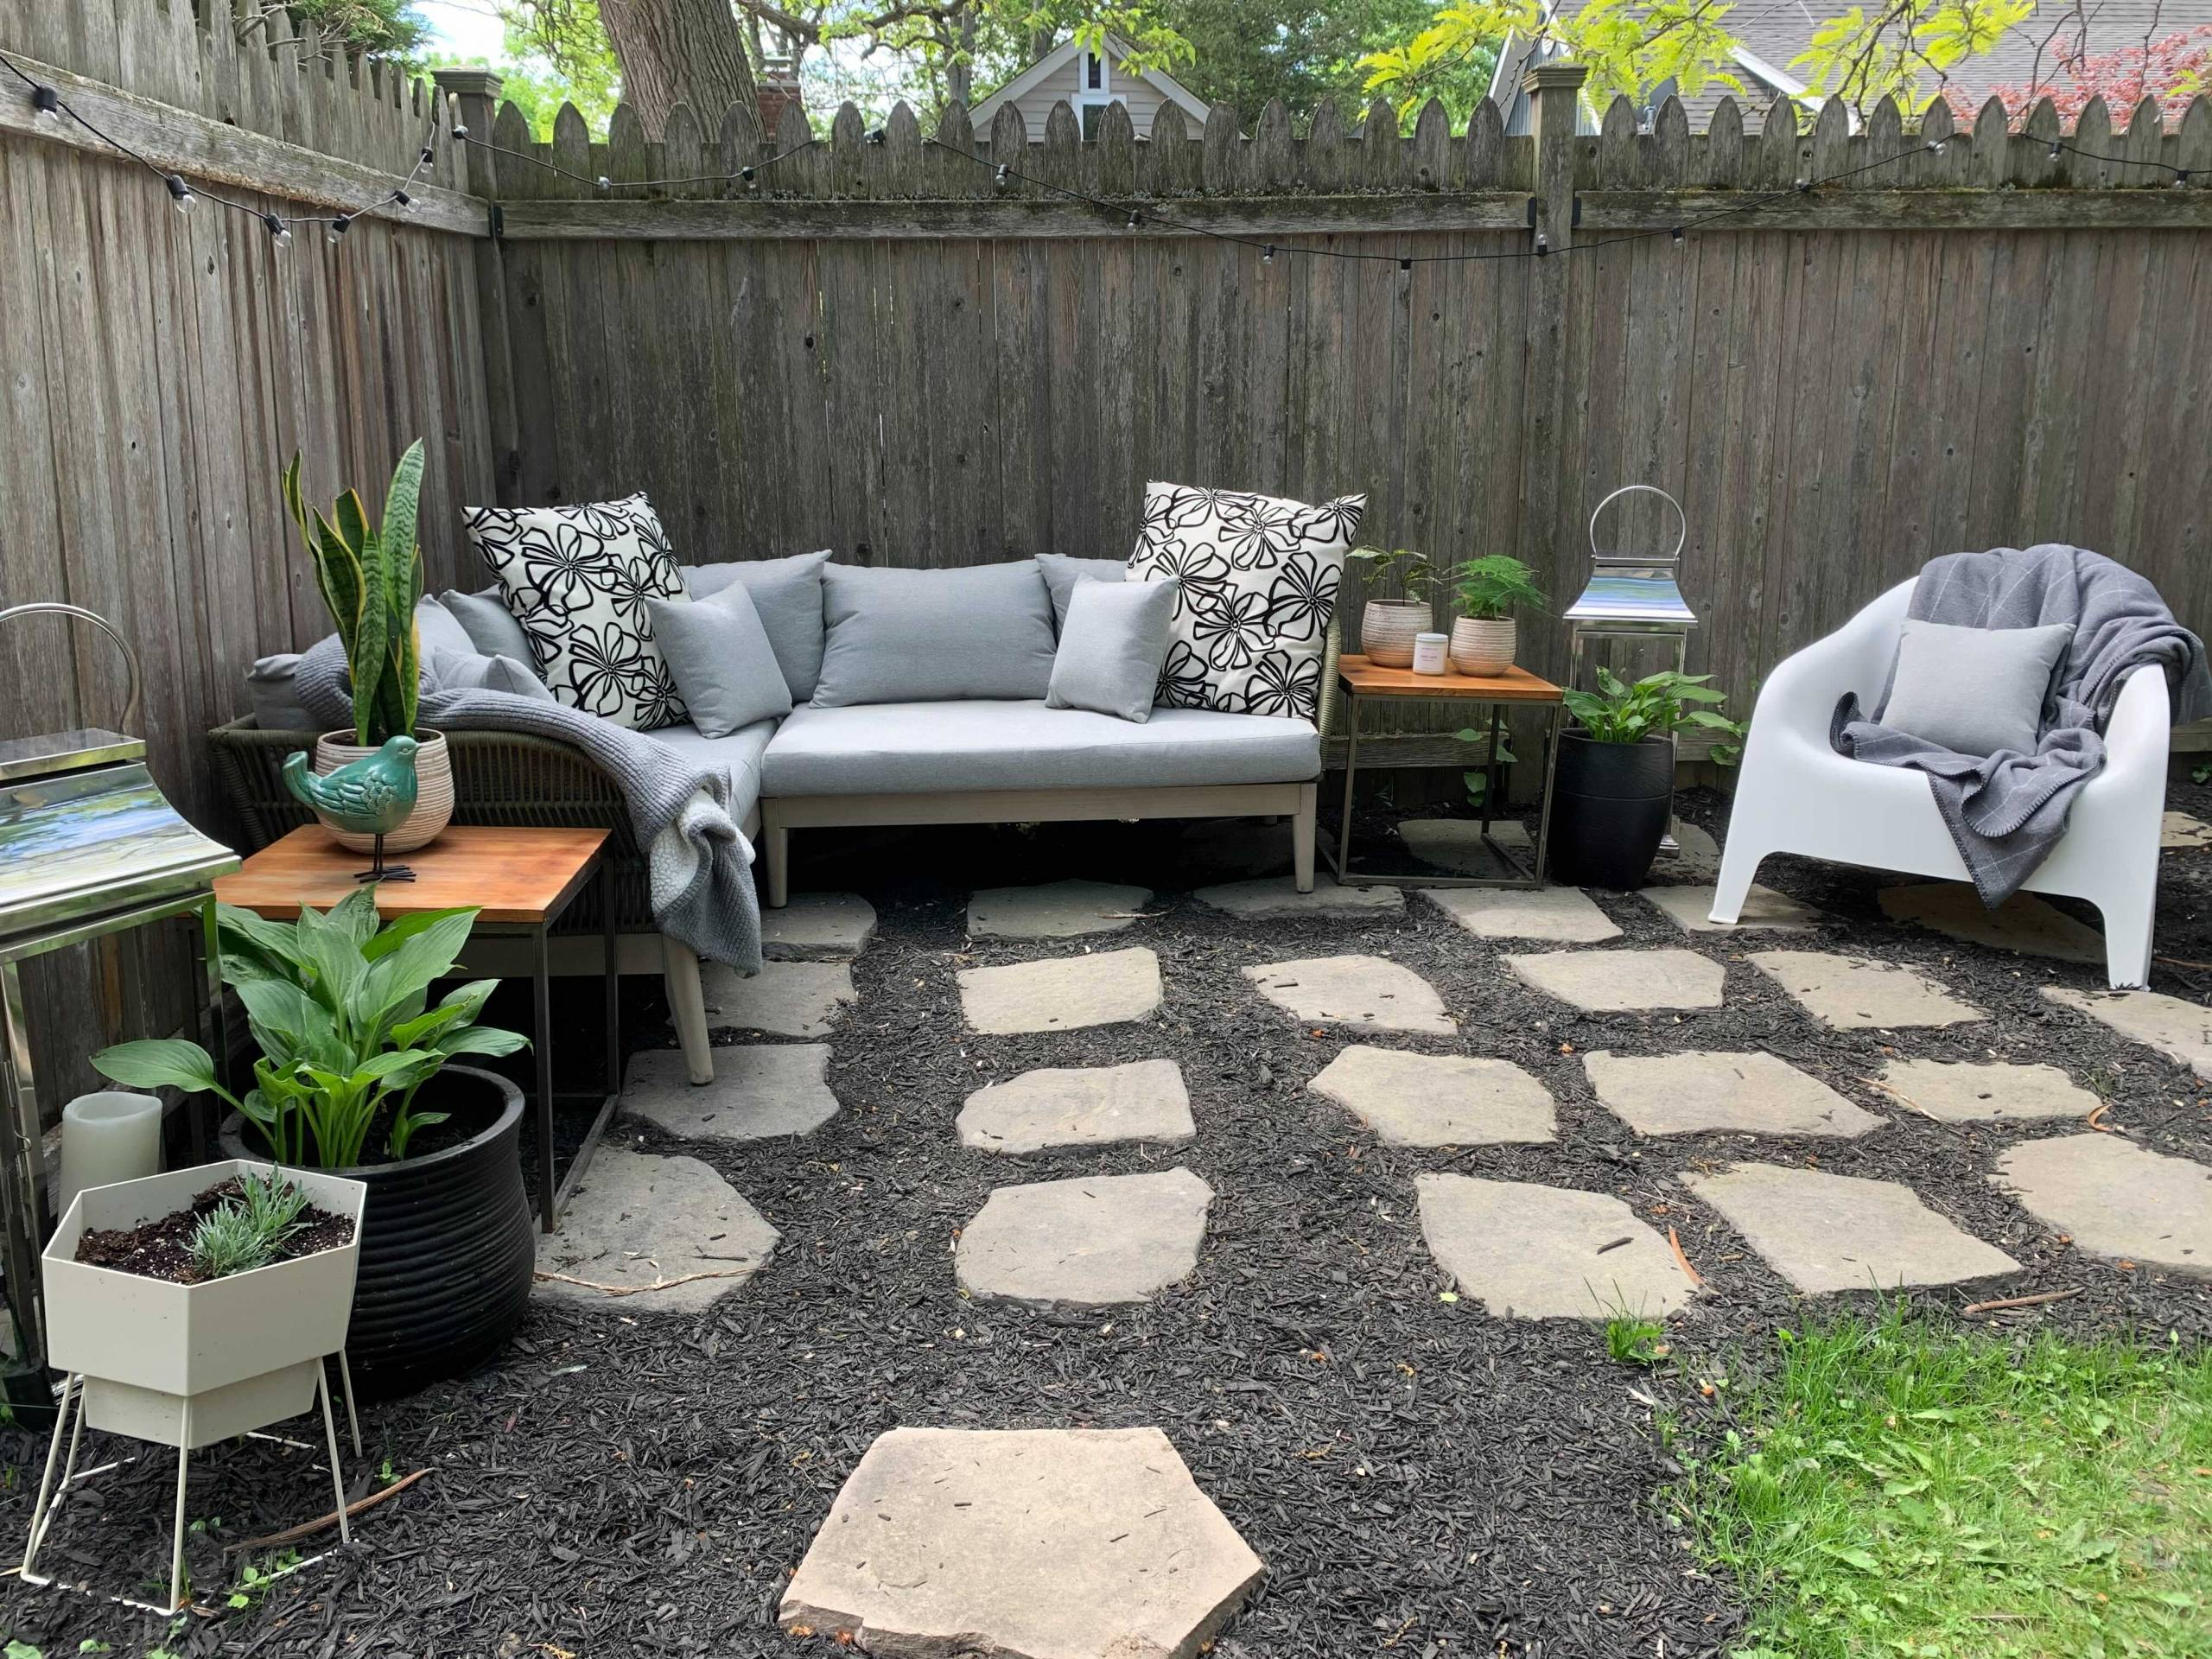 The STYLE Canada Team Used These Pro Tips To Create A Backyard Oasis – Check Out The Results!